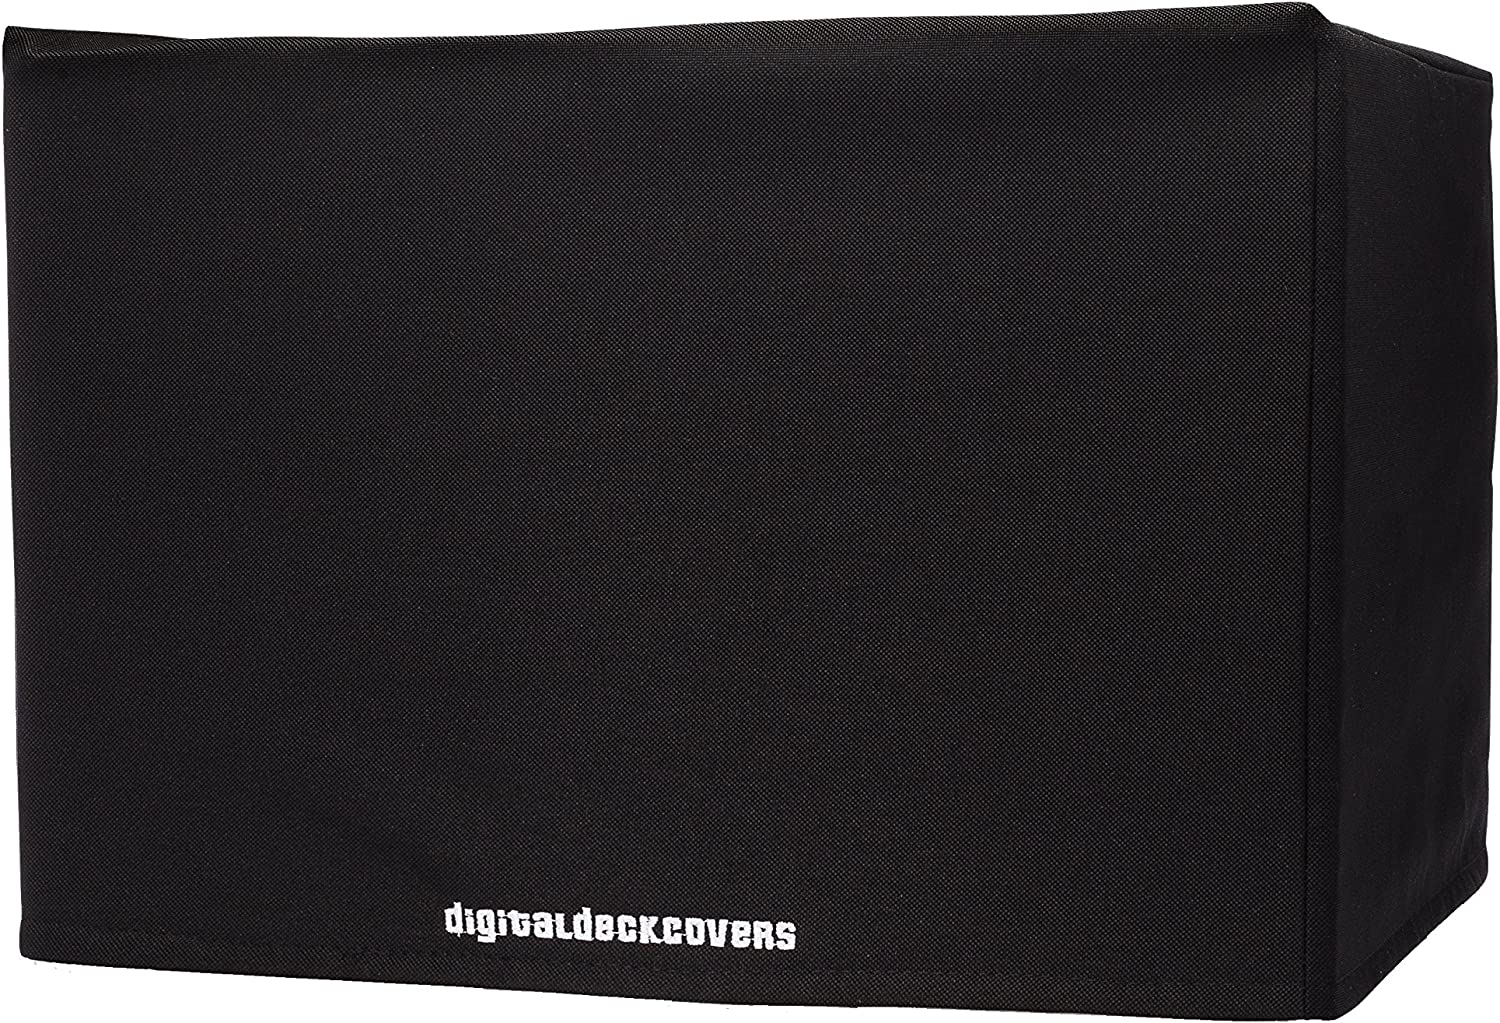 DigitalDeckCovers Printer Dust Cover for HP Photosmart 7510/7515 / 7520/7525 / Premium C310a Printers Protector [Antistatic, Water Resistant, Heavy Duty Fabric, Black]